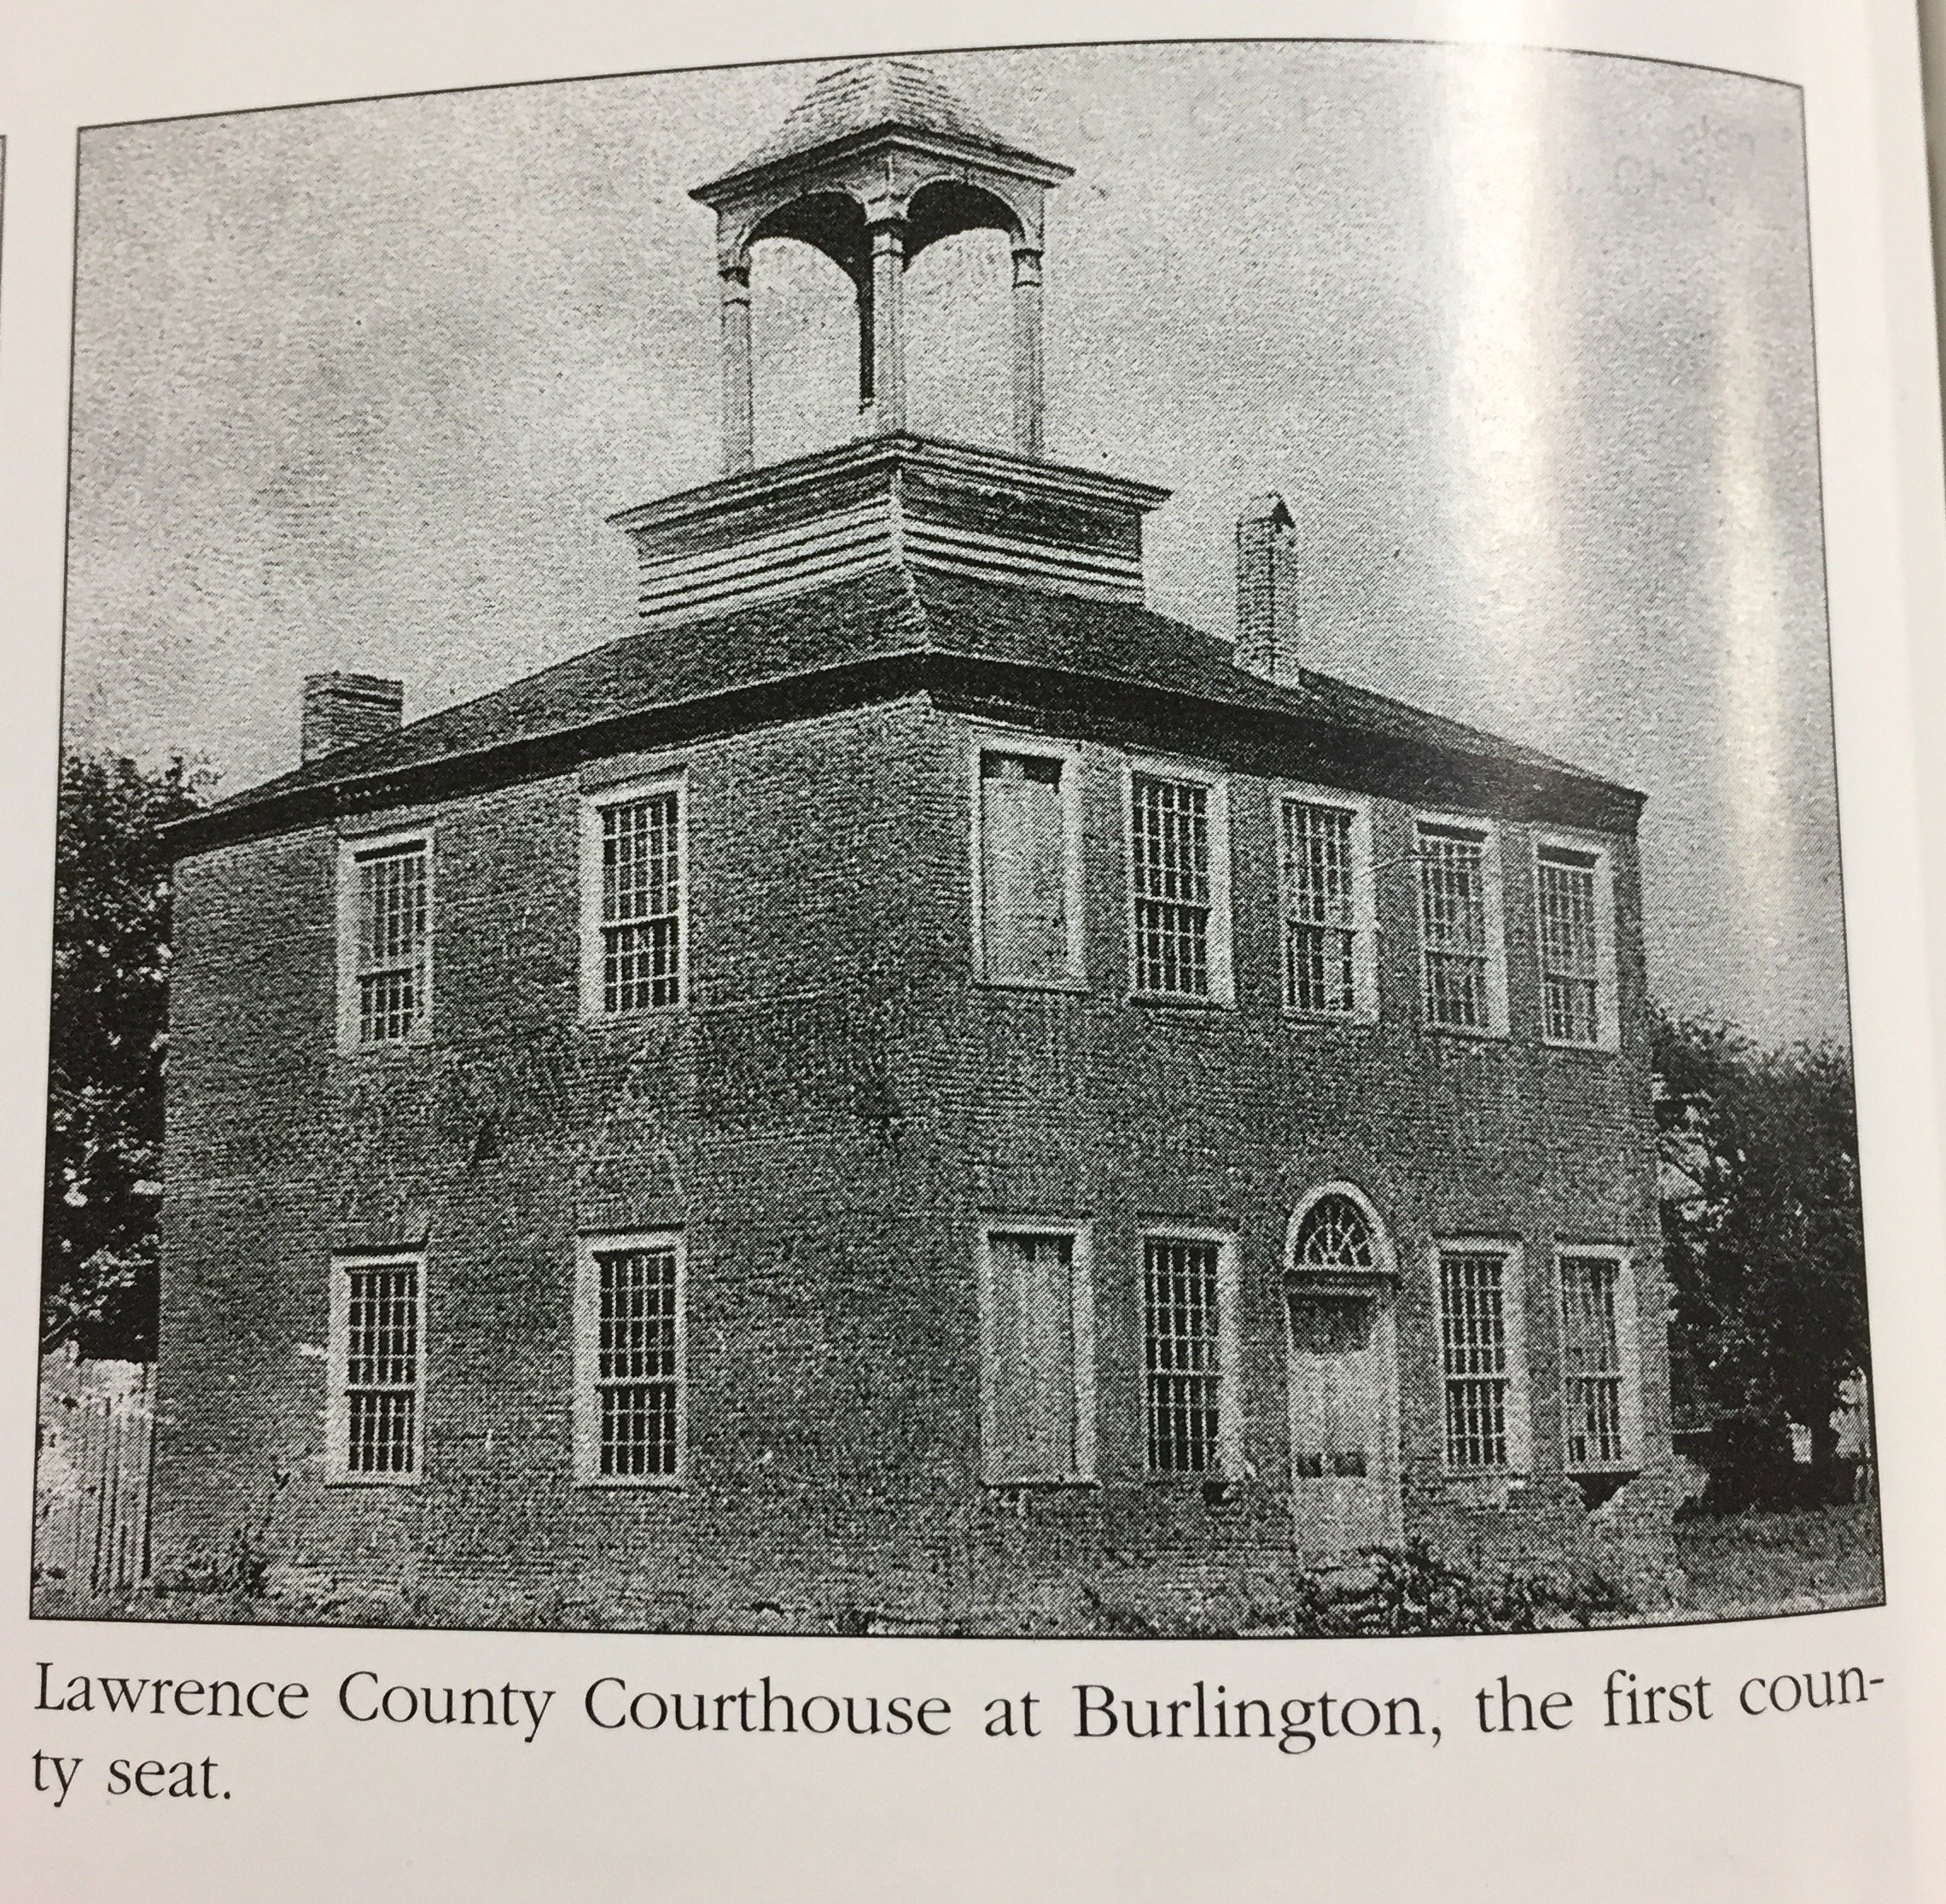 The Lawrence County Court House in Burlington, the first county seat.